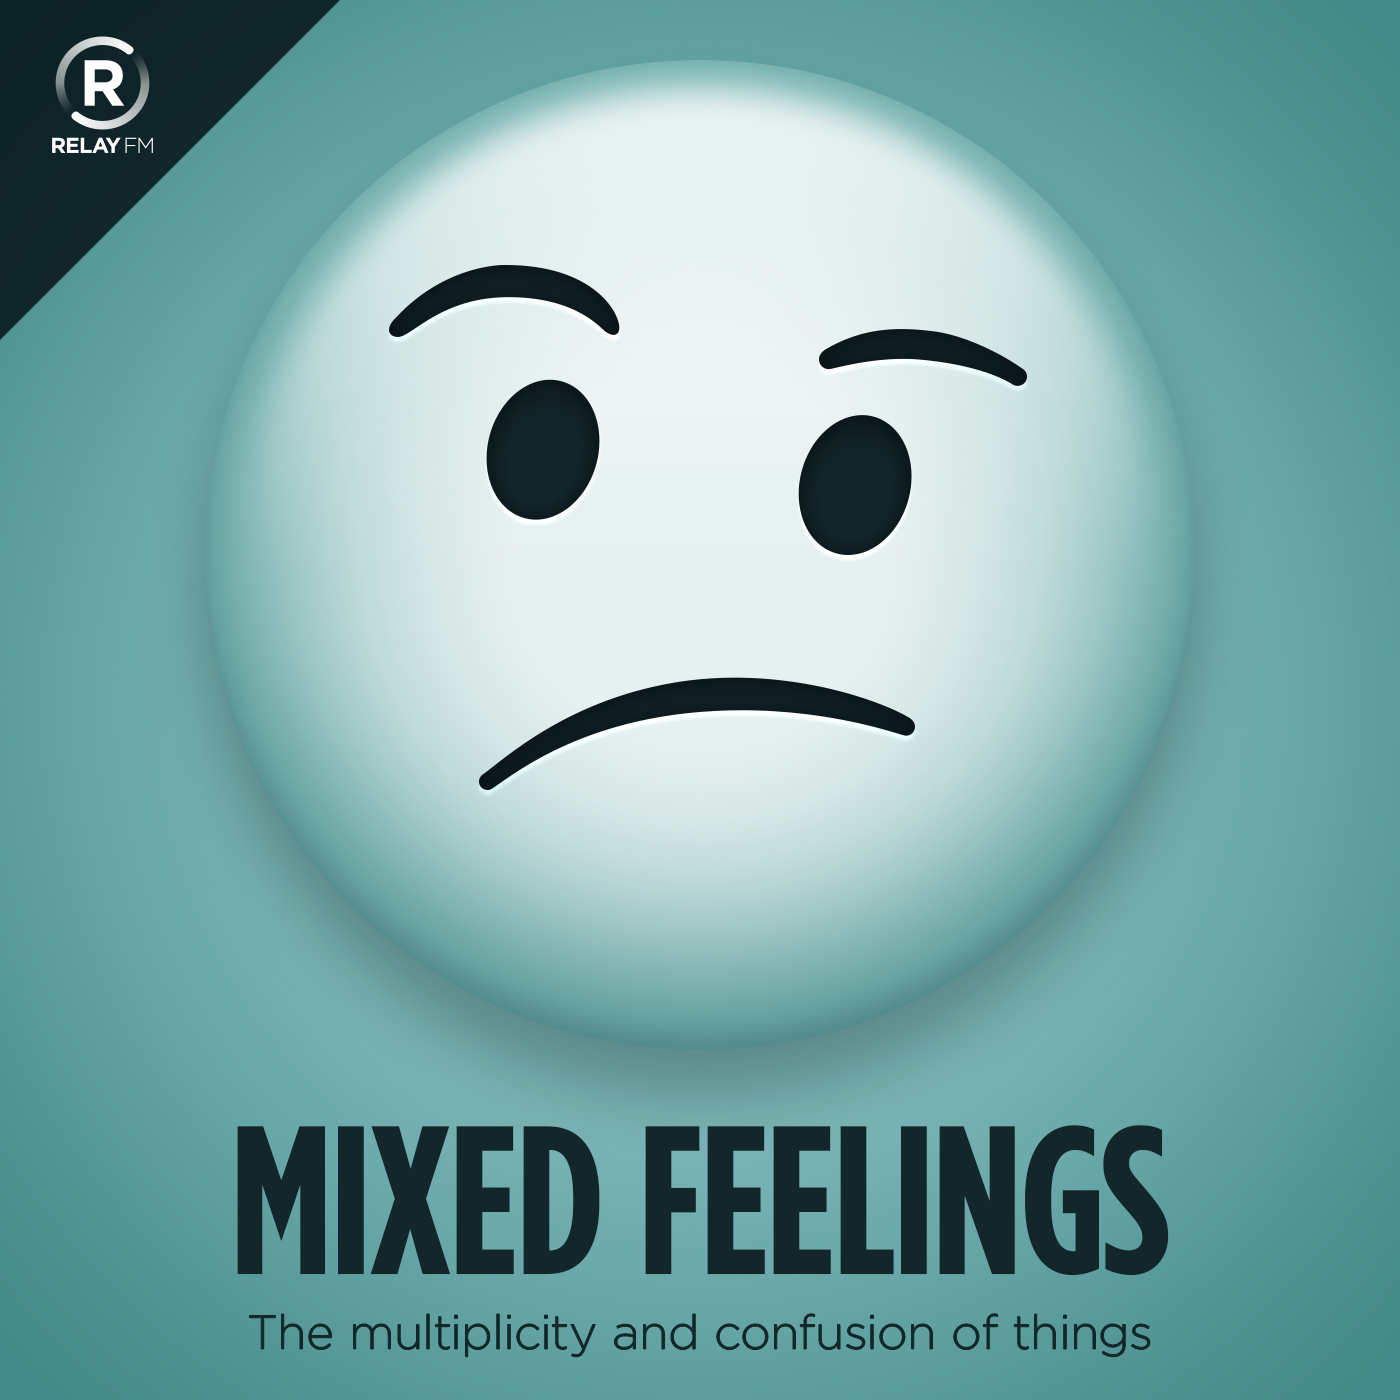 Broadcast artwork mixedfeelings artwork